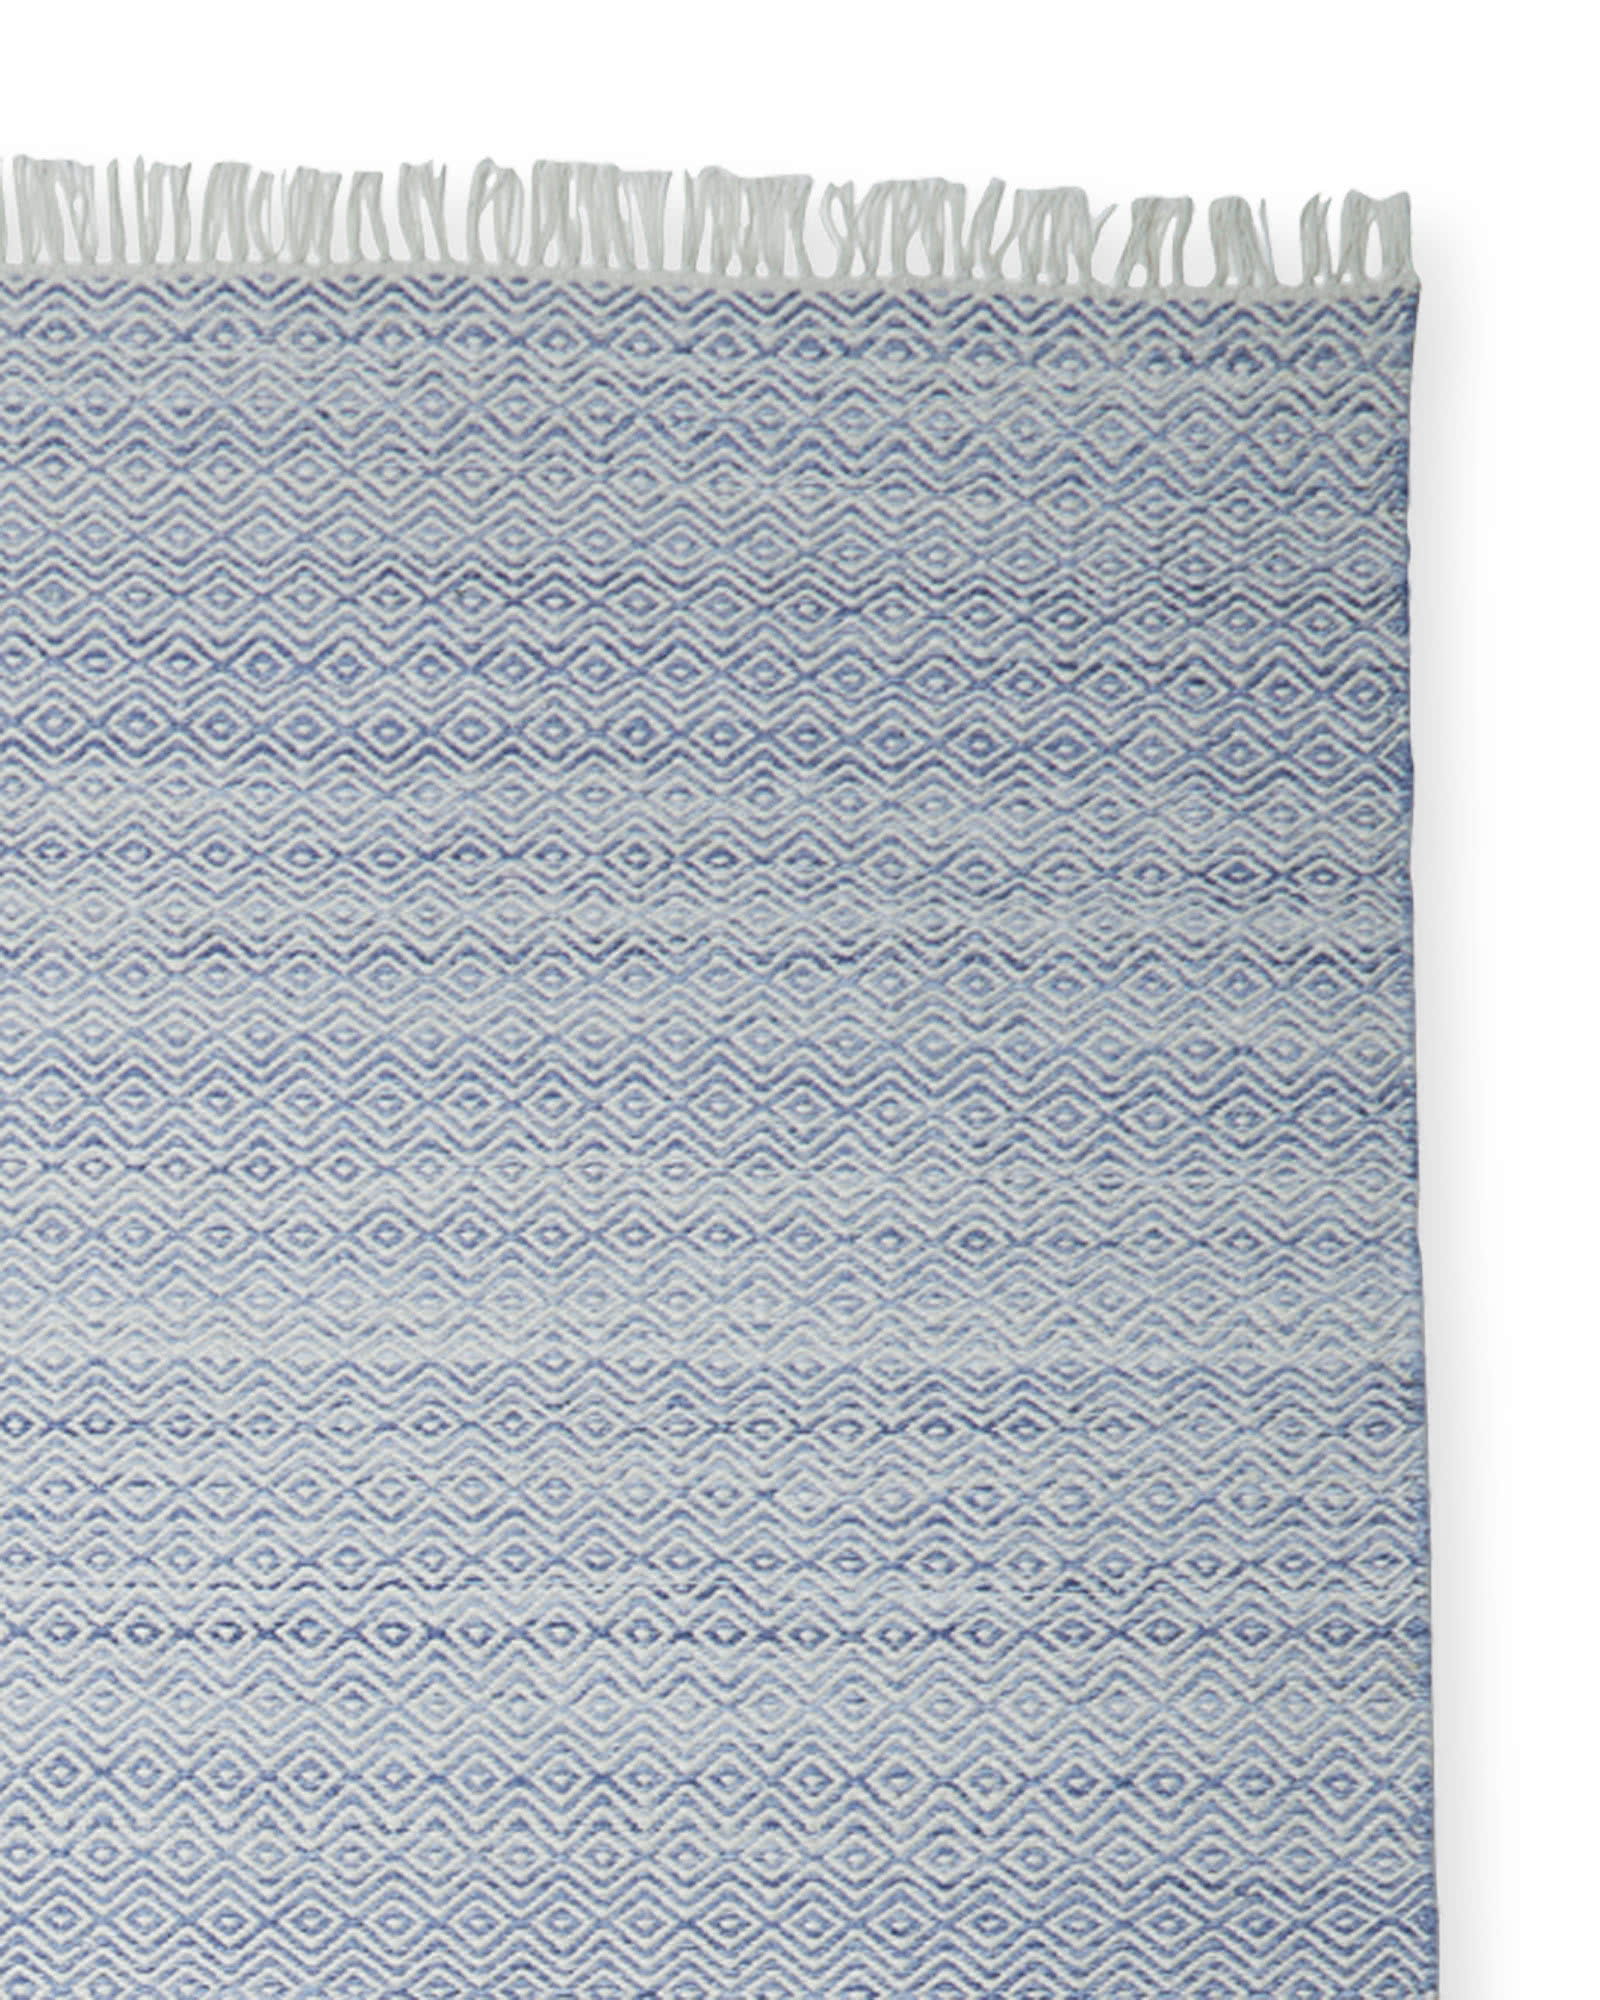 Seaview Rug Swatch, Blue